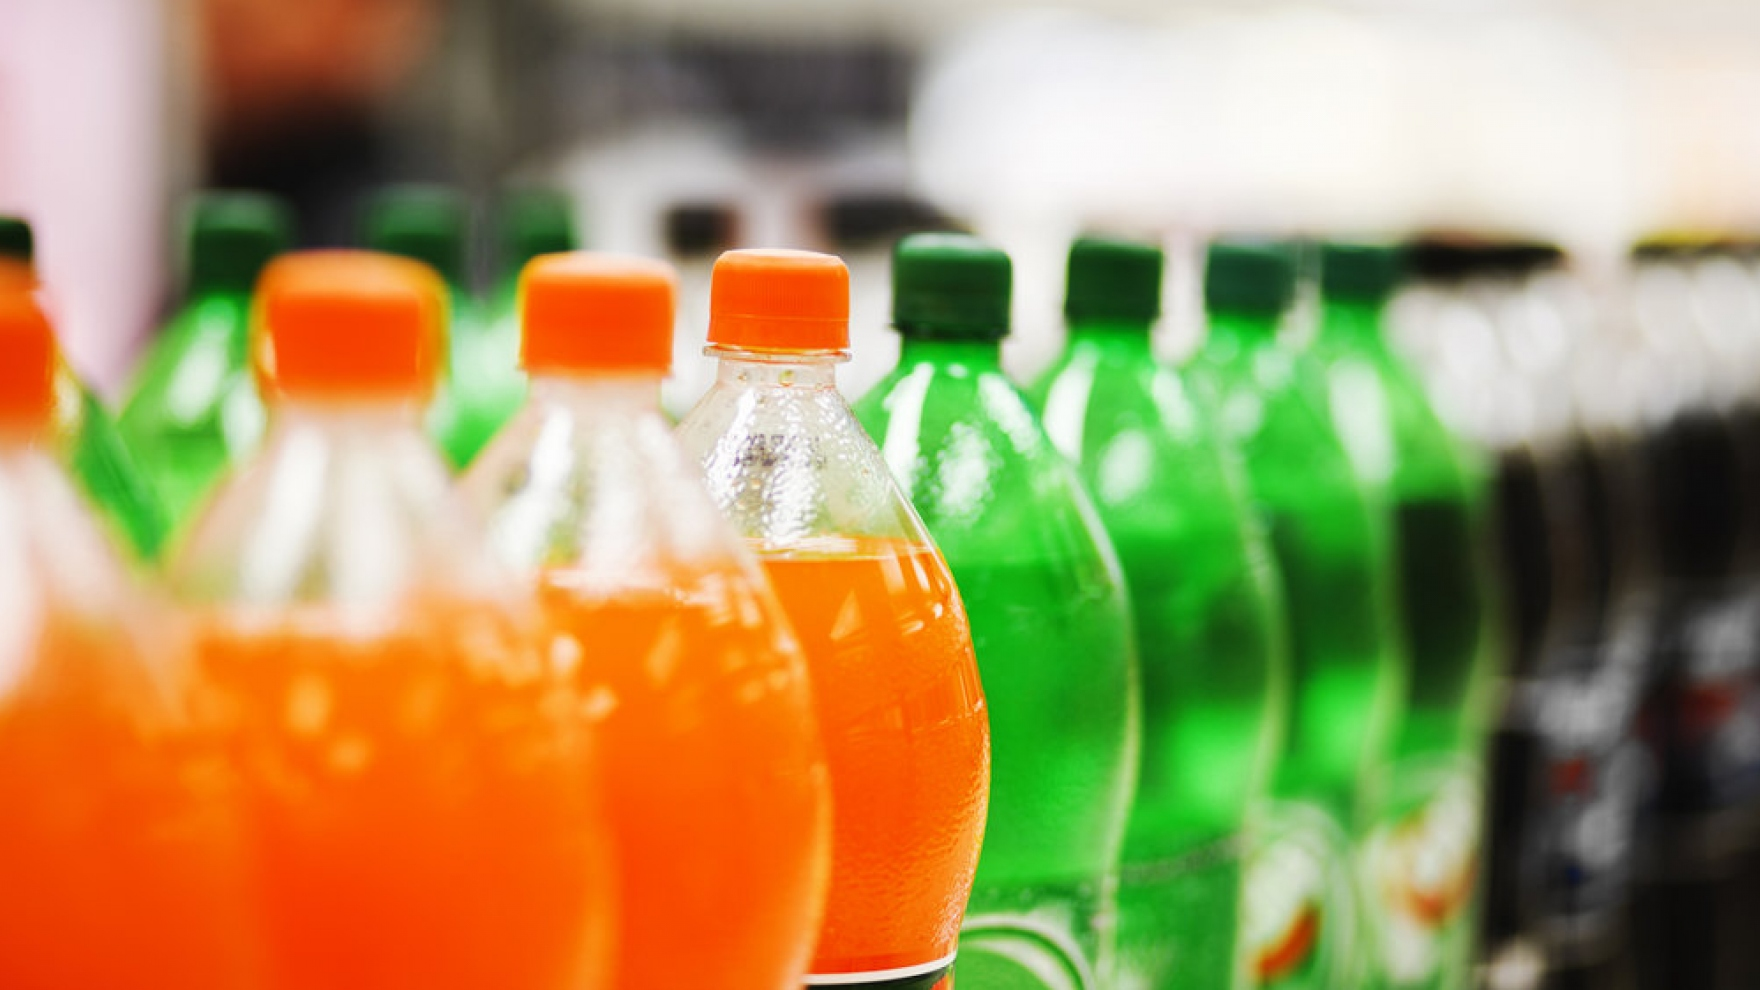 soda bottles on a supermarket shelf